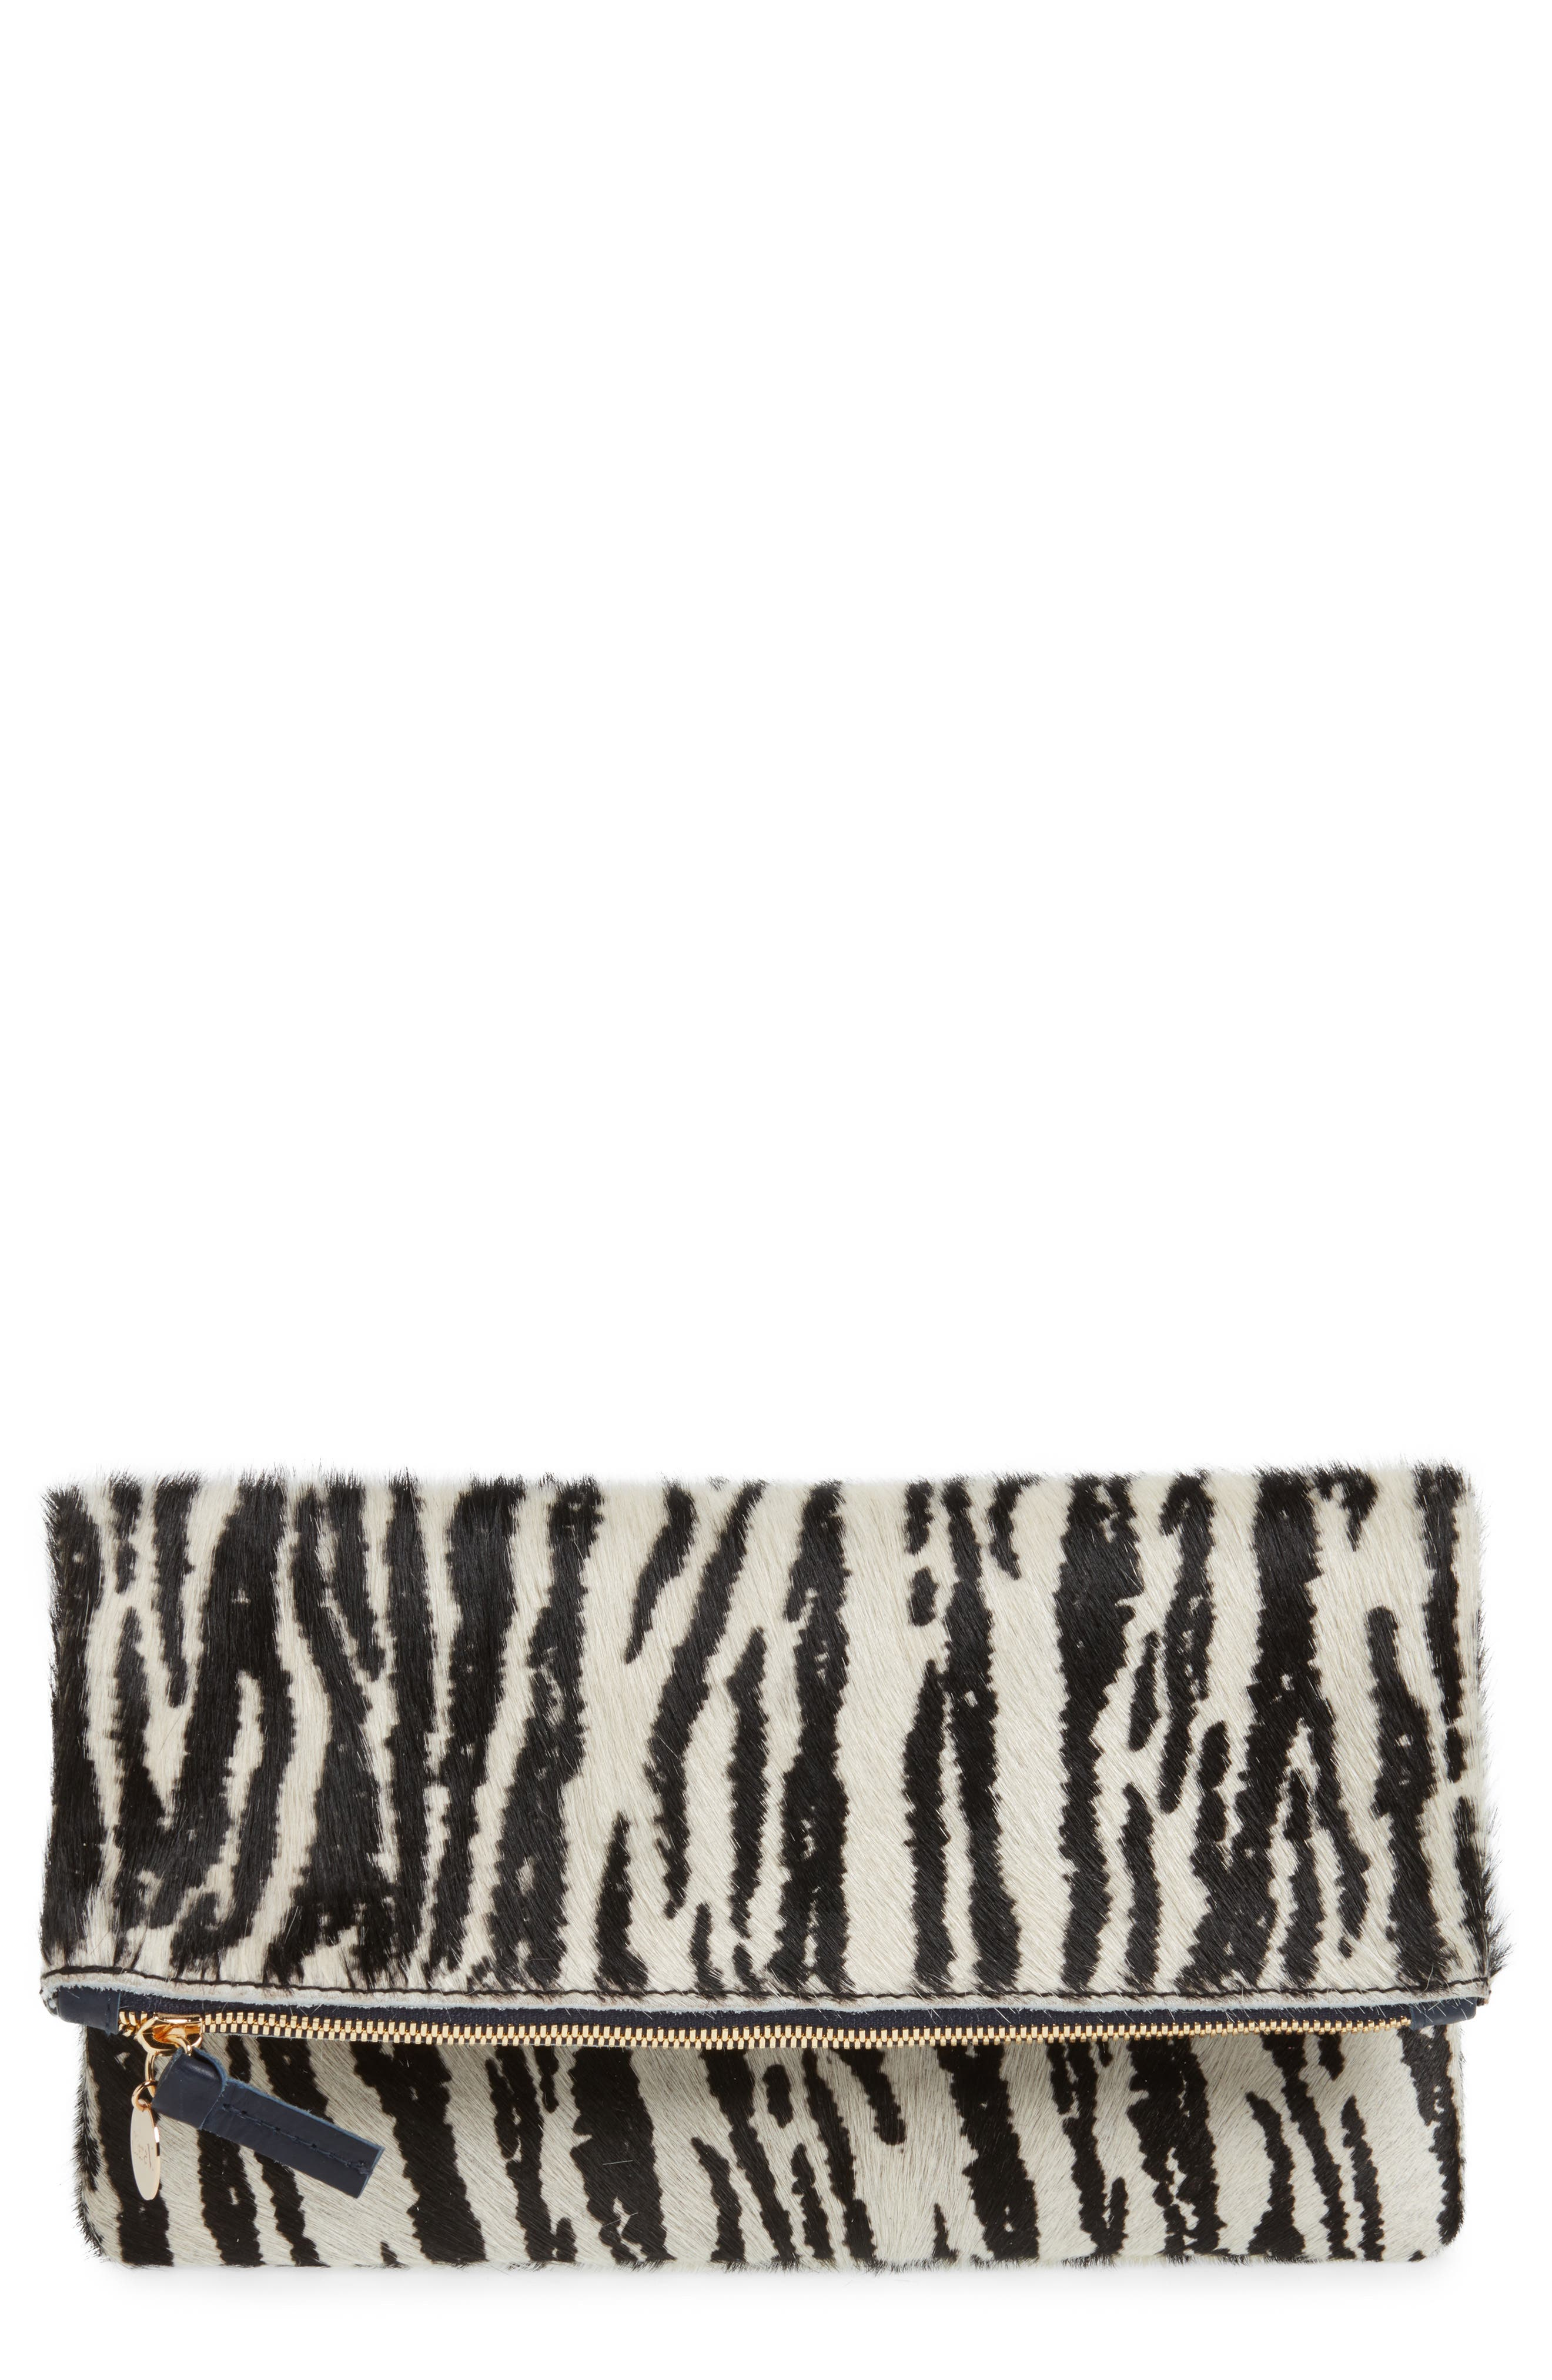 Zebra Print Genuine Calf Hair Foldover Clutch,                             Main thumbnail 1, color,                             900